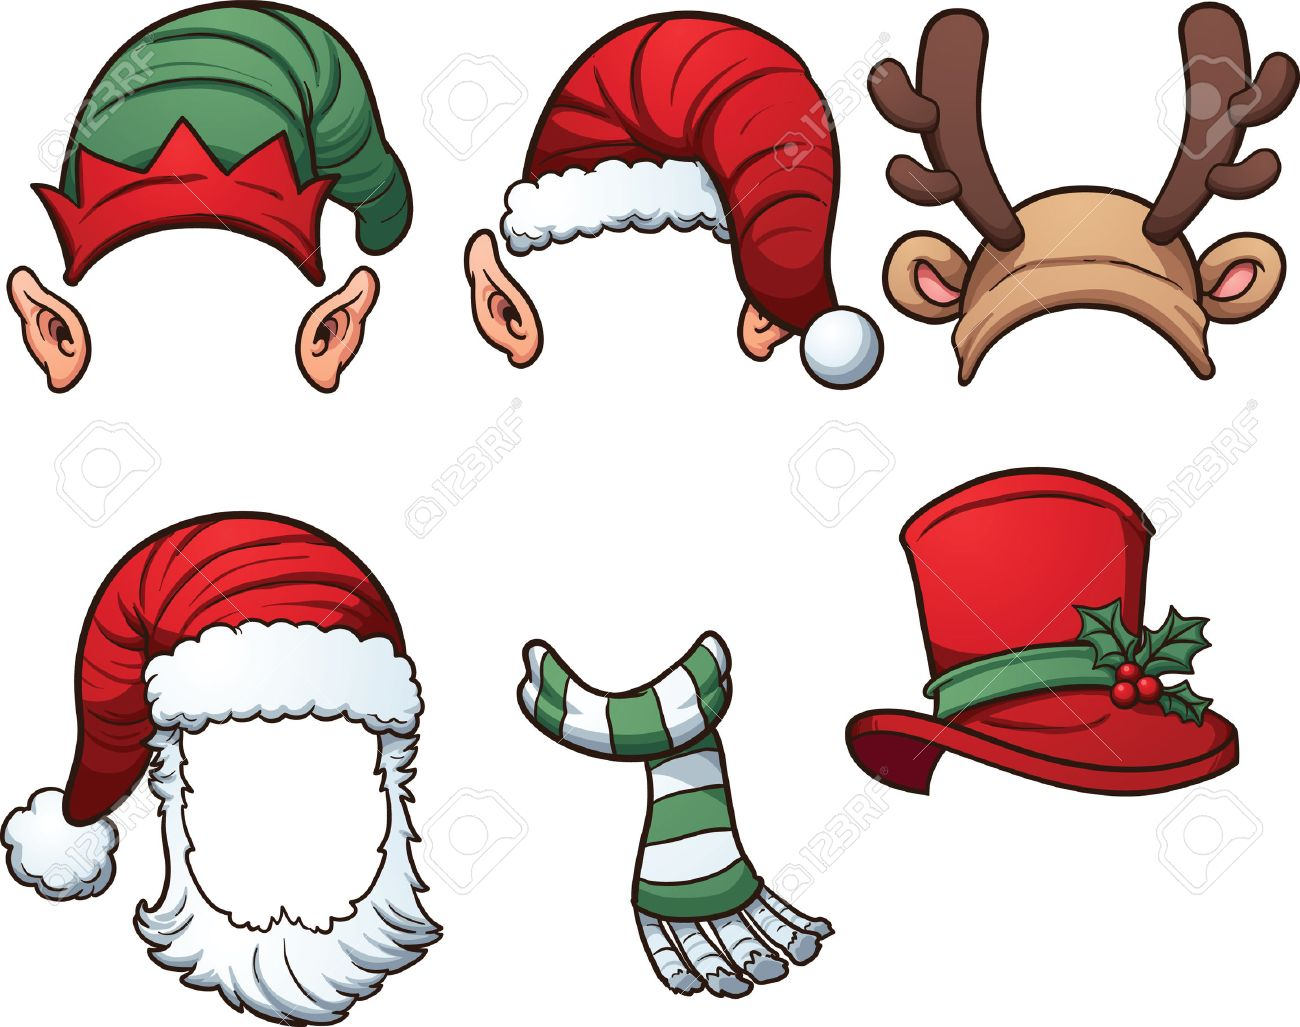 Christmas Hats.Christmas Hats And Scarf Vector Clip Art Illustration With Simple